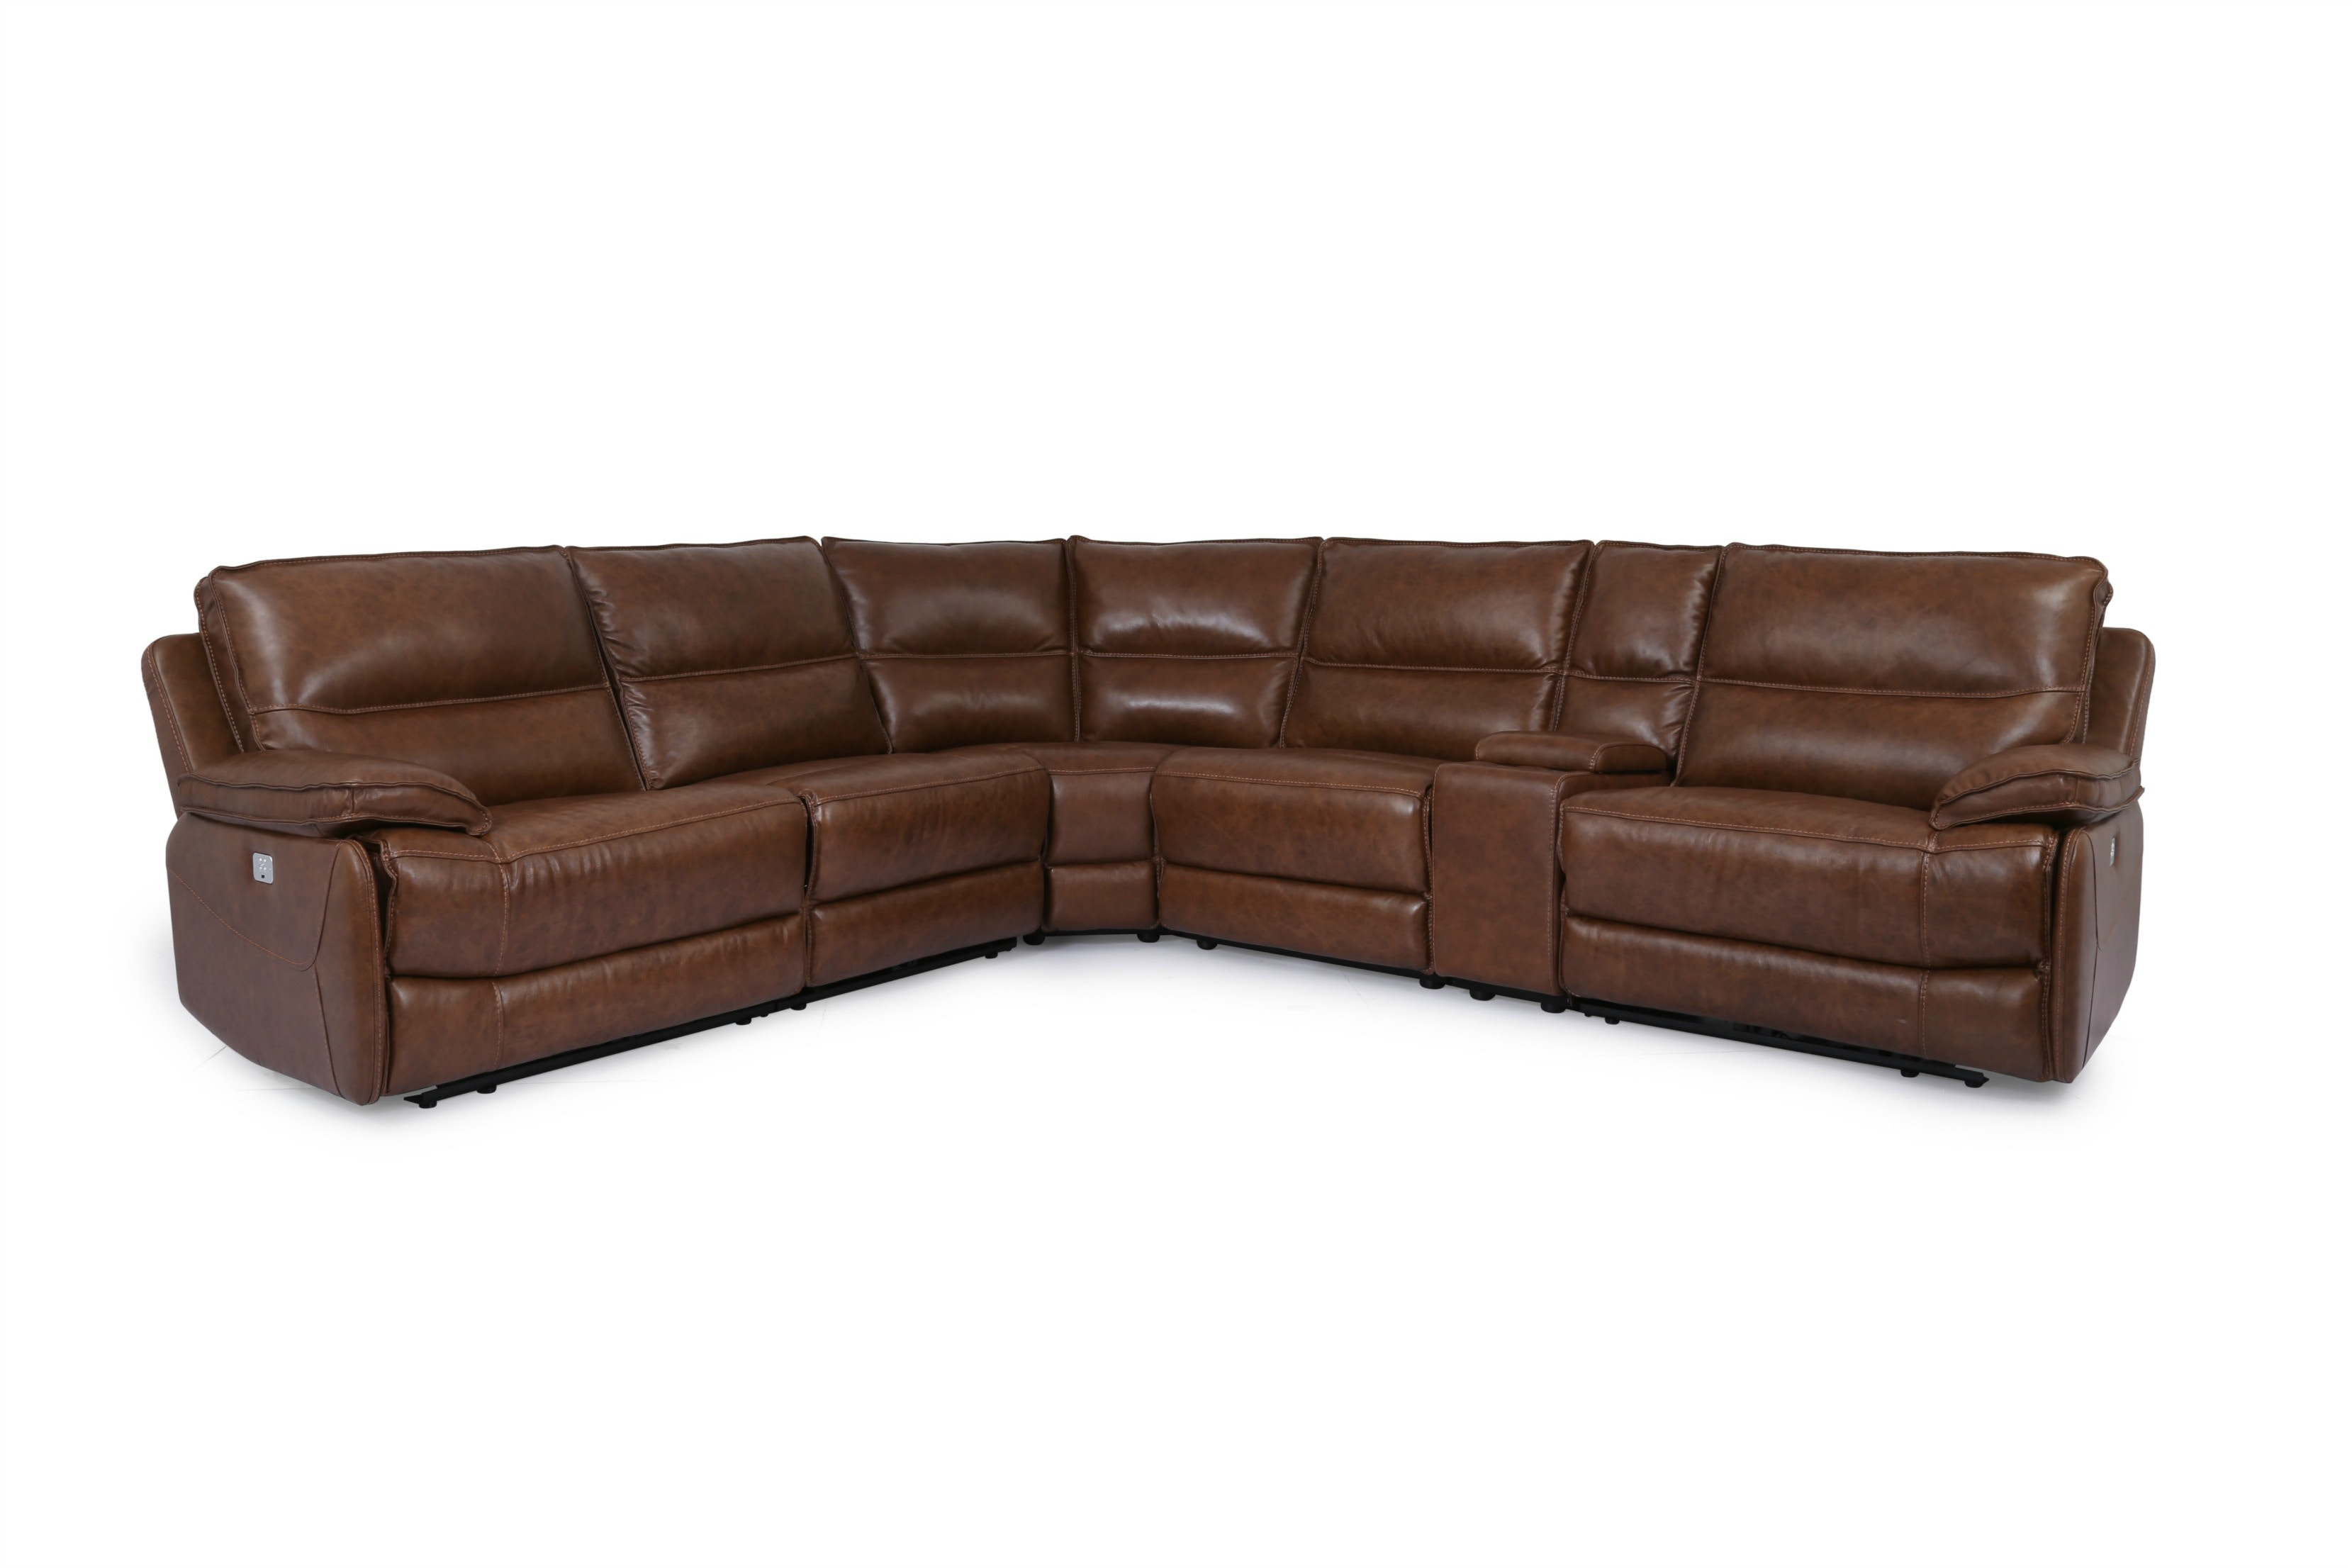 Norwood Furniture Living Room Reclining Leather Sectional 5091